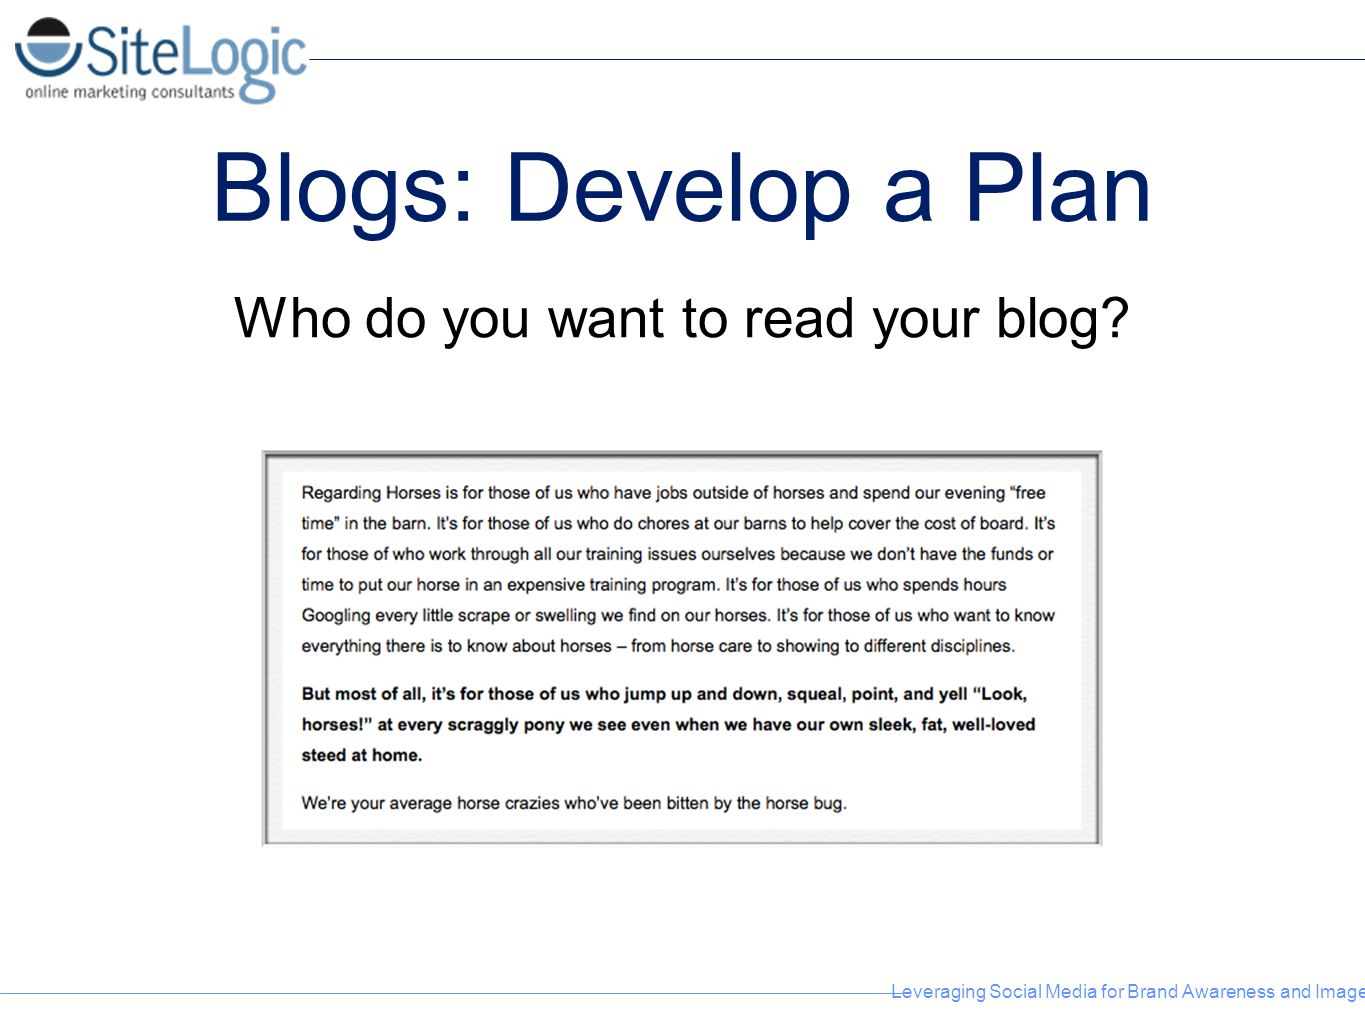 Who do you want to read your blog